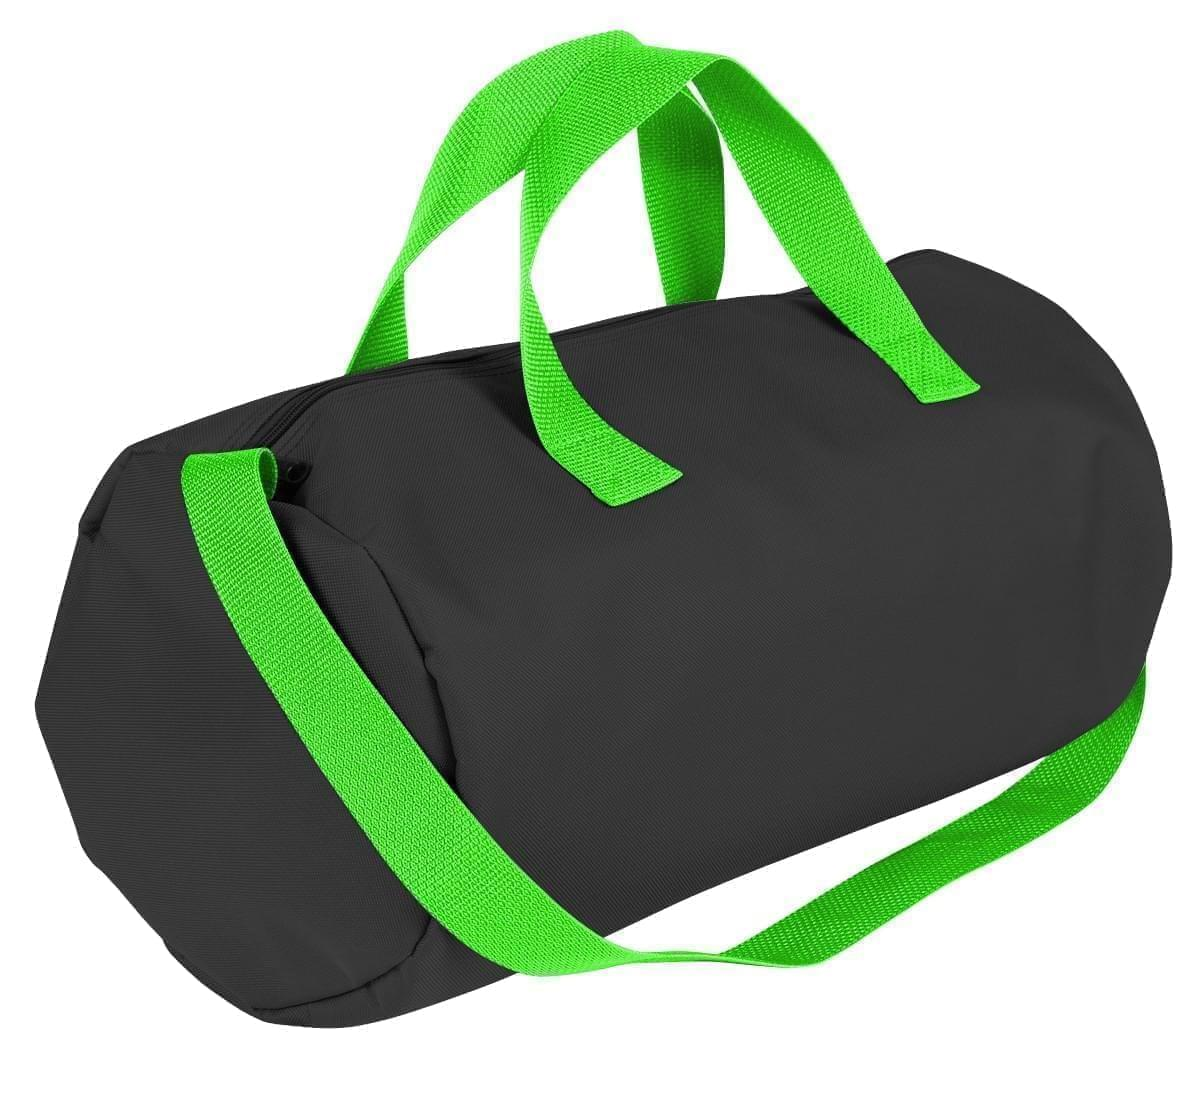 USA Made Nylon Poly Gym Roll Bags, Black-Lime, ROCX31AAOY